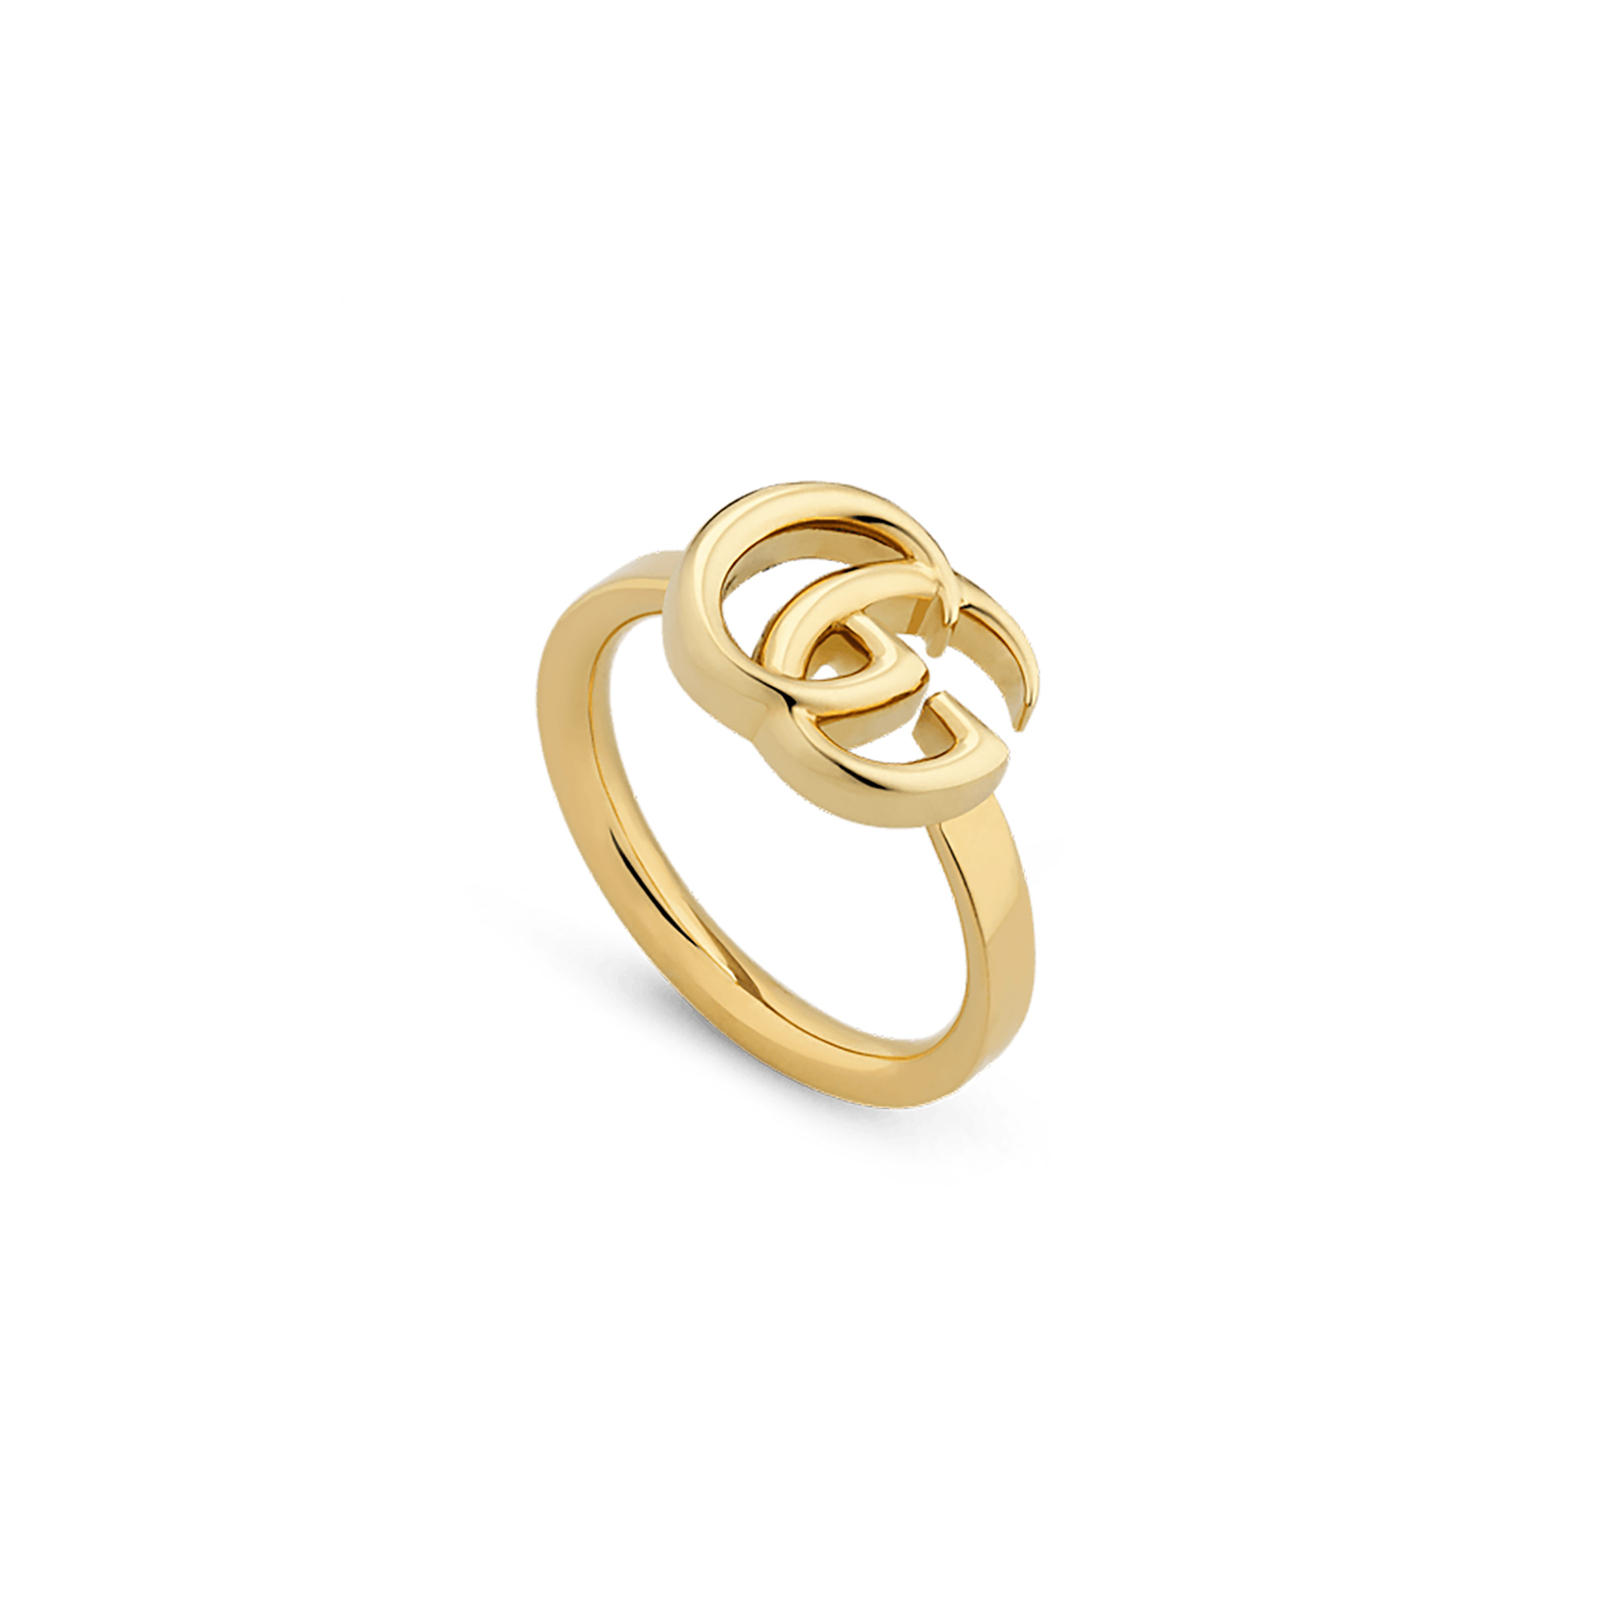 Gucci GG Running Yellow Gold Ring - Ring Size M.5